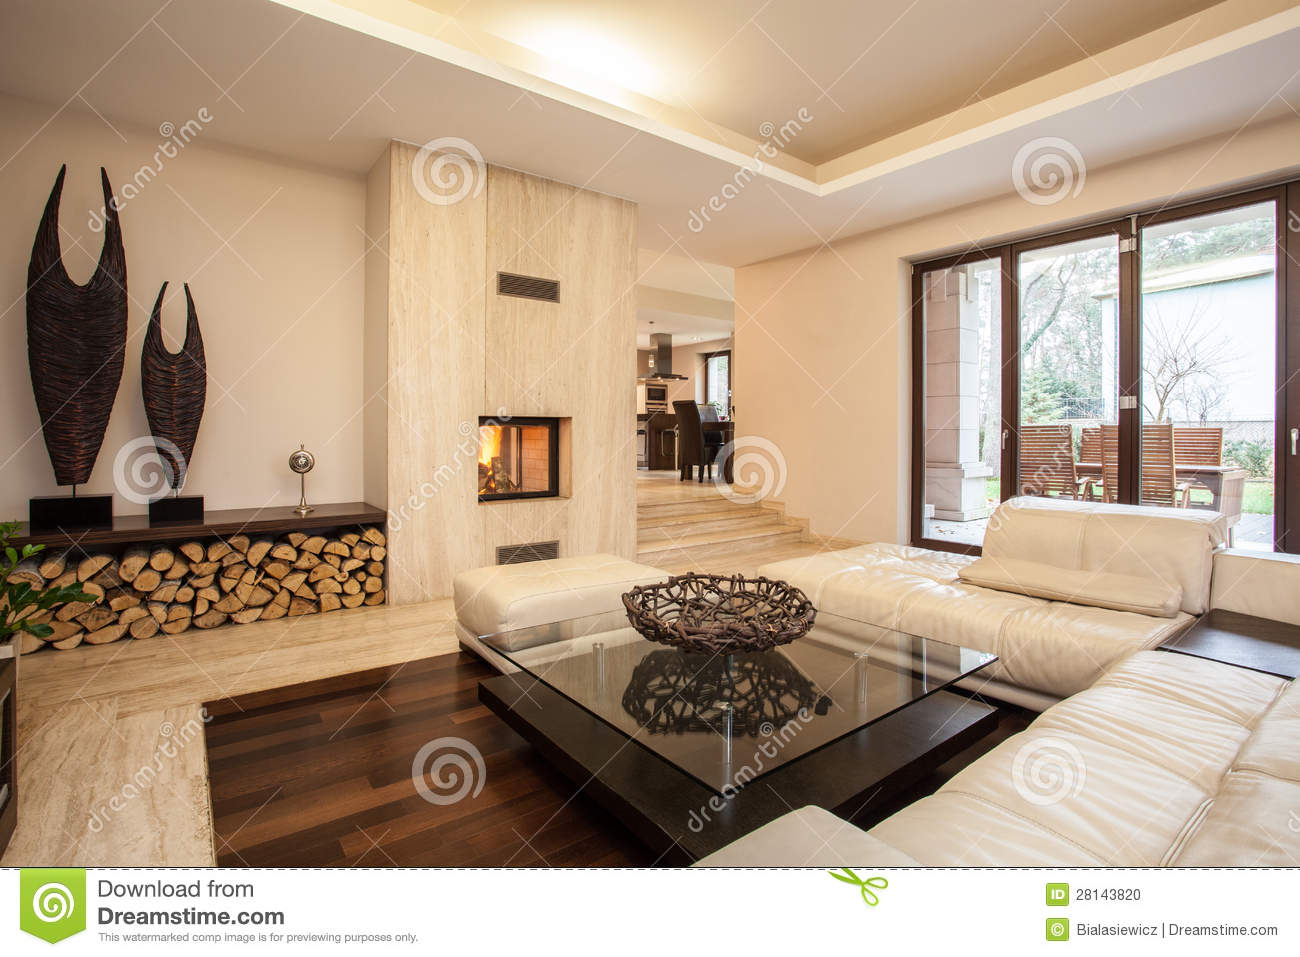 Modern hotel room interior stock photo image 18197840 - Beige House Interior Living Room